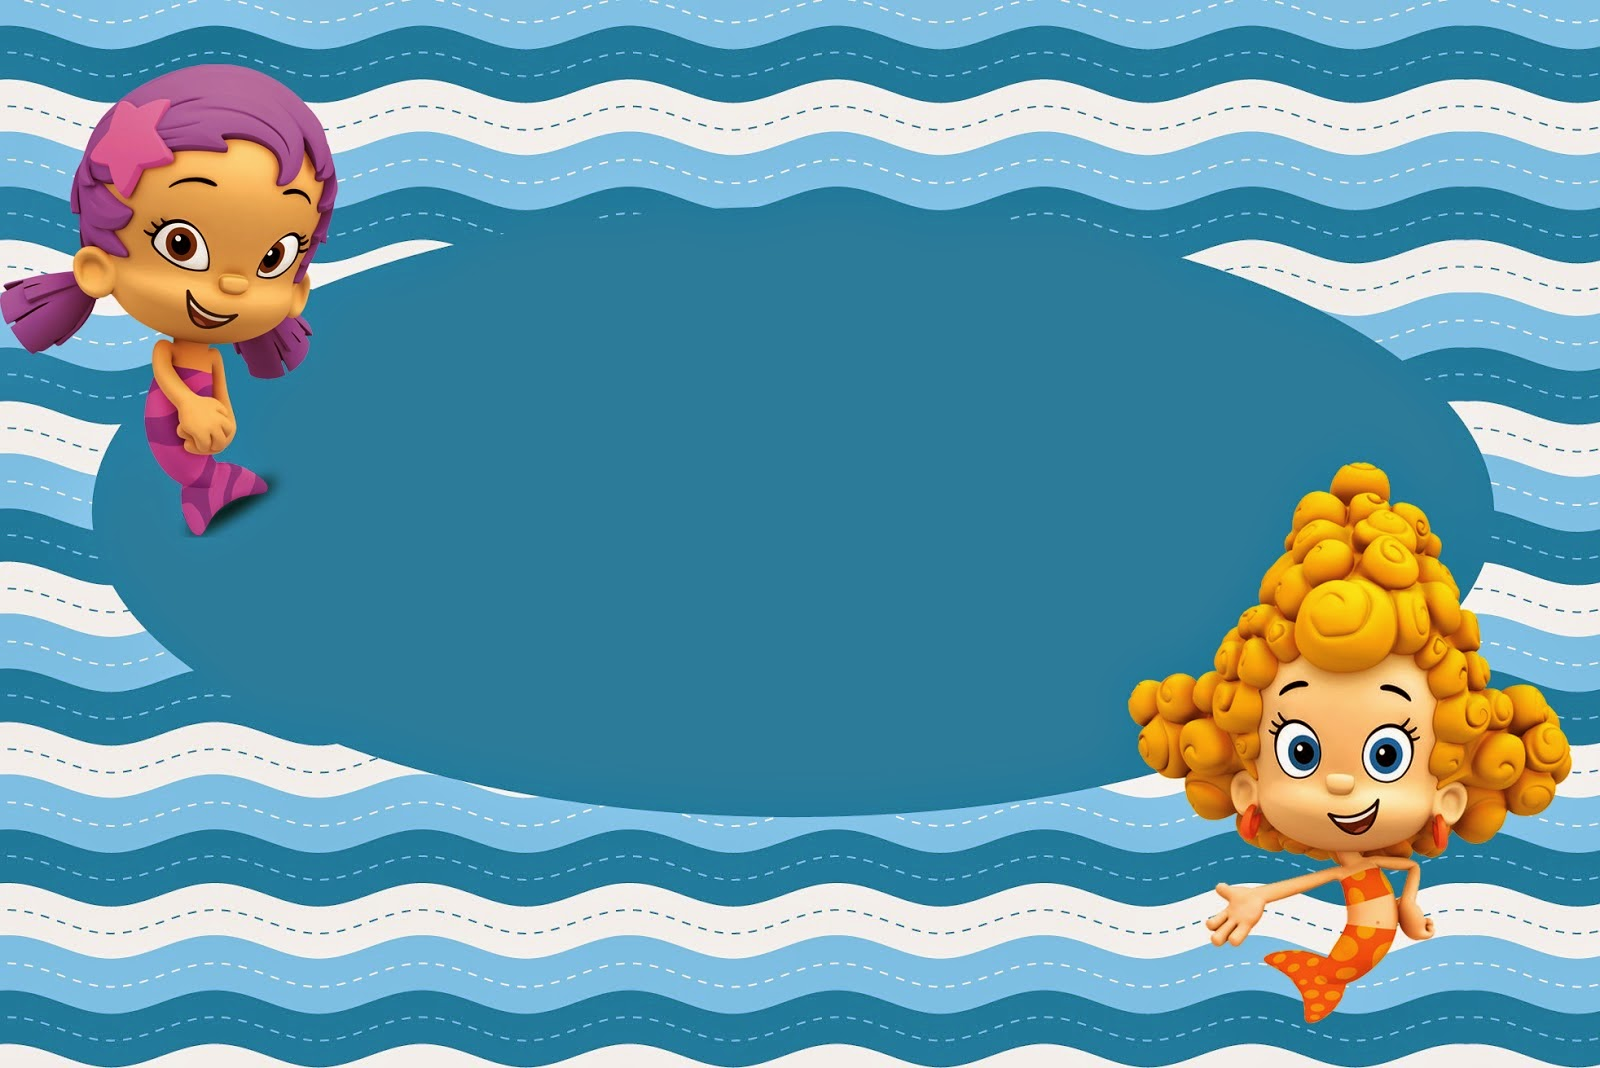 Bubble Guppies Birthday Invitations Template is awesome invitations design